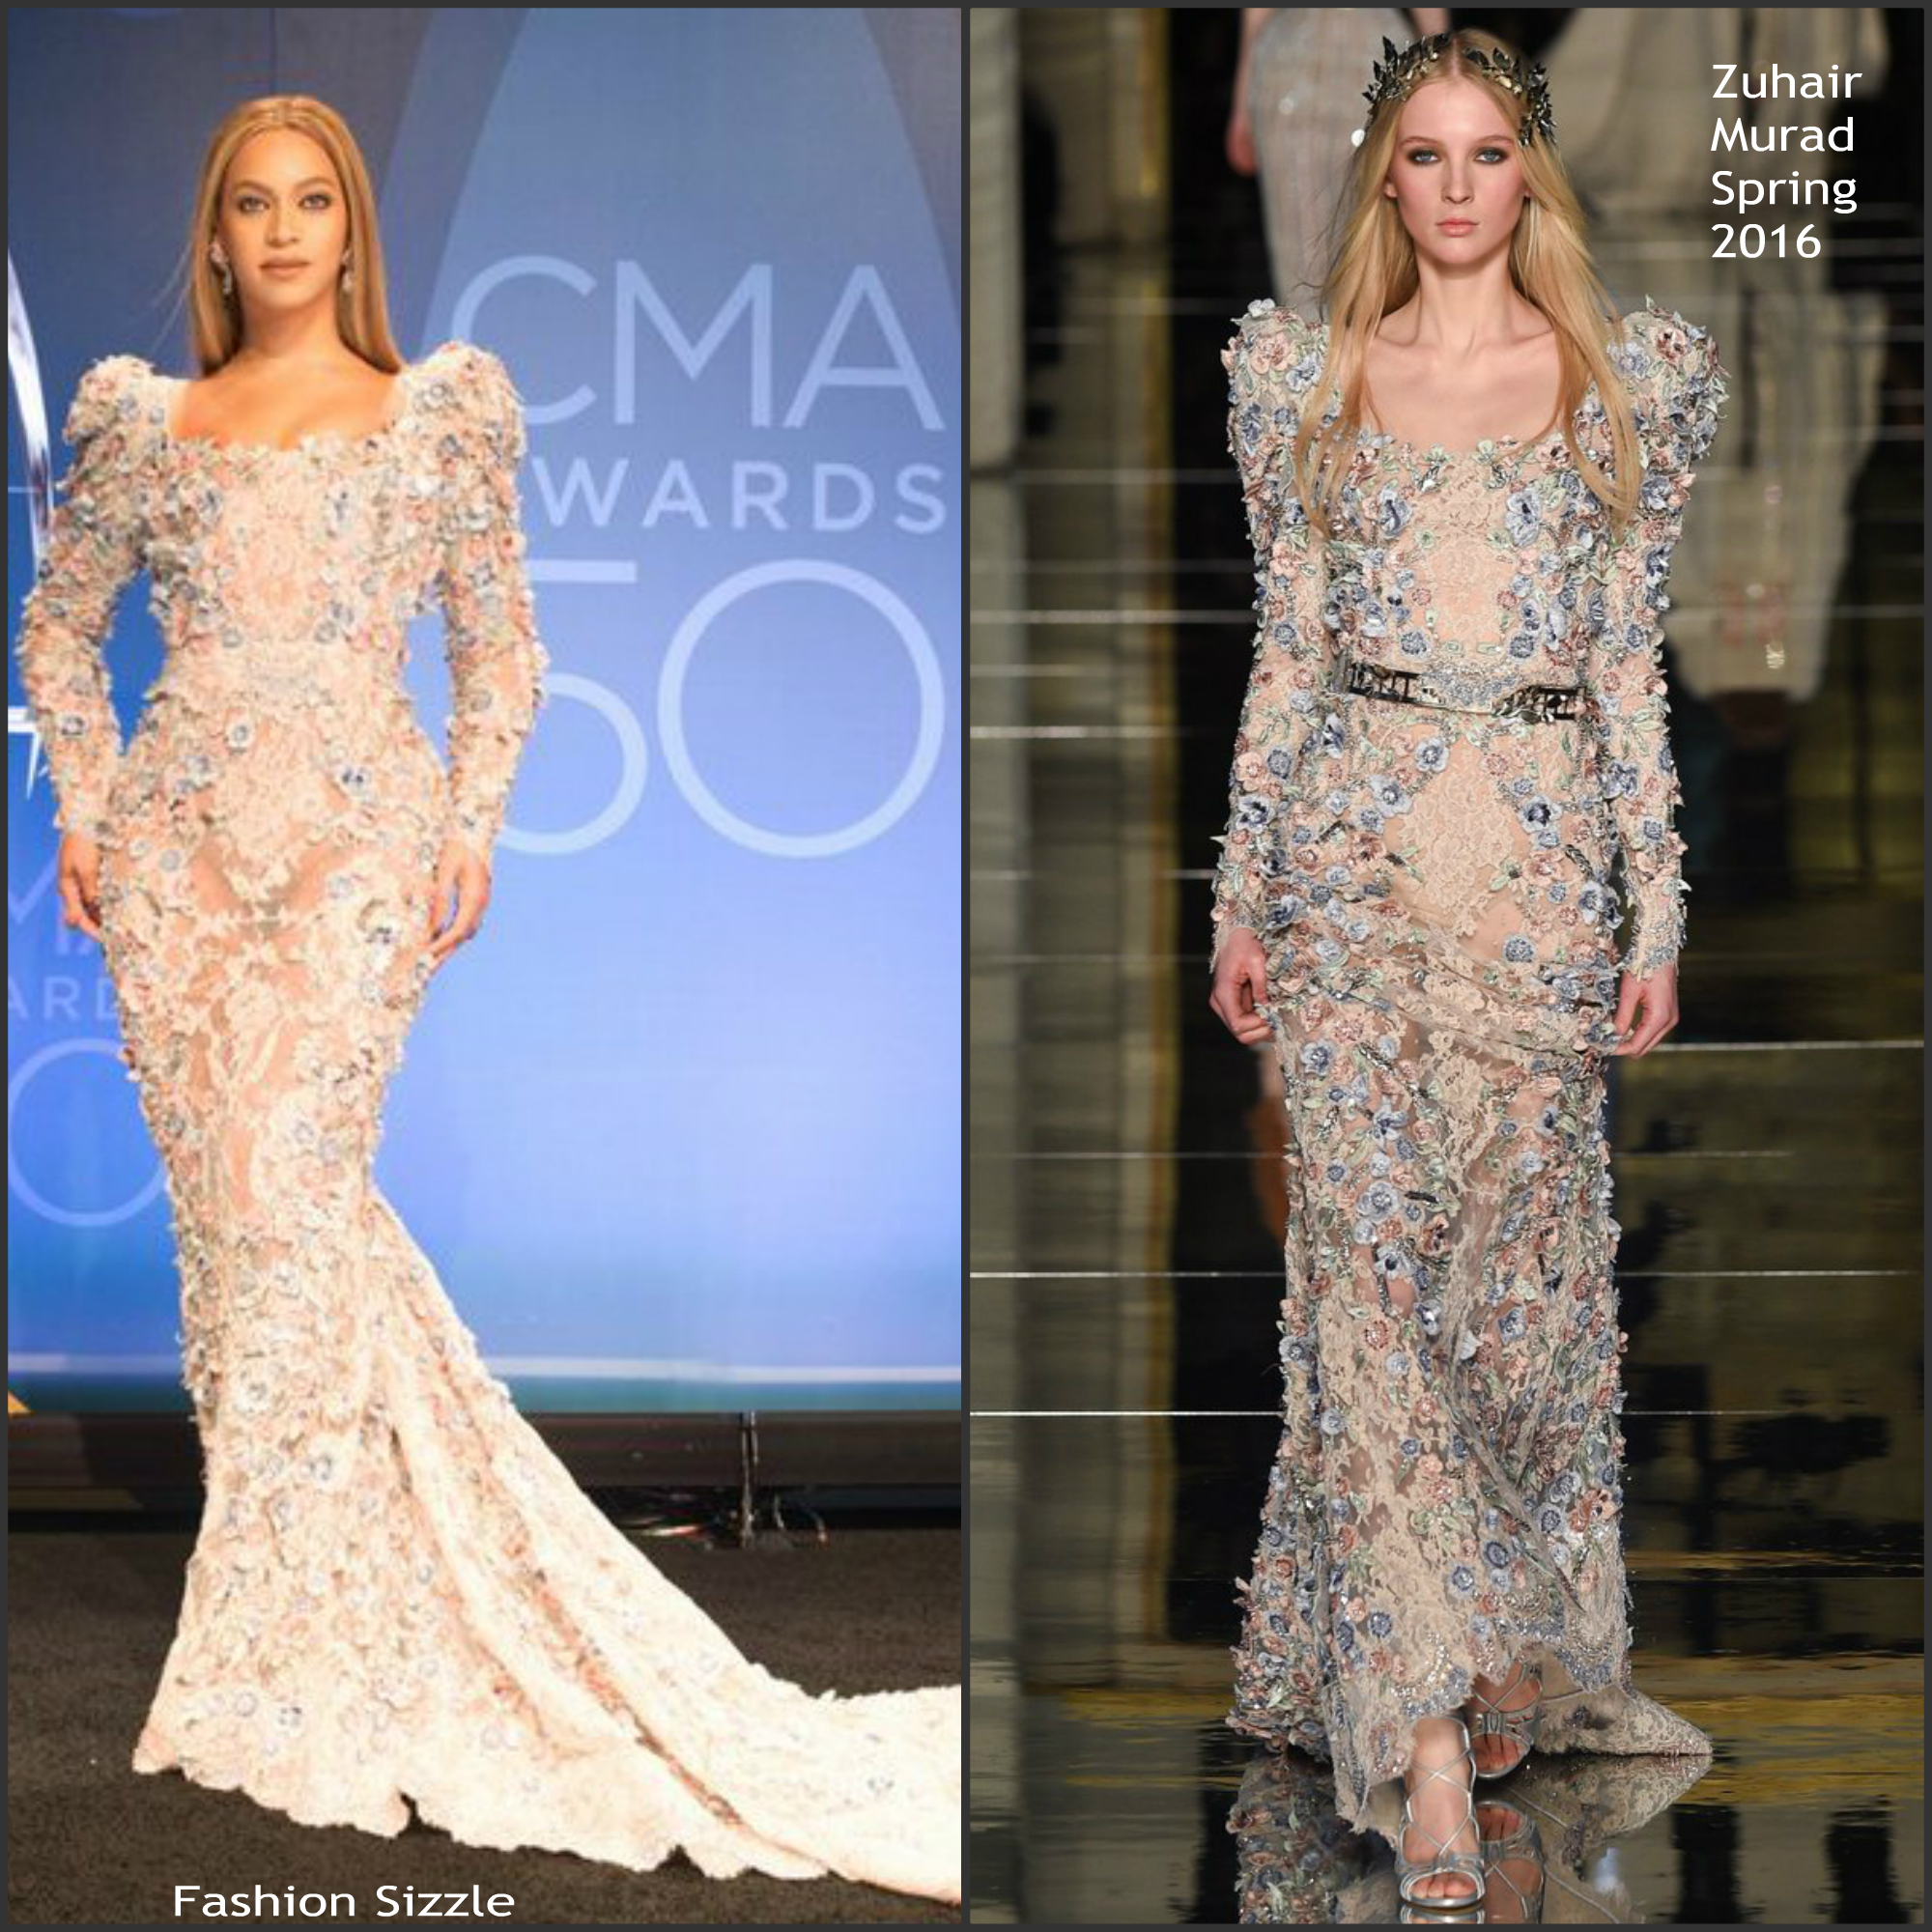 beyonce-in-zuhair-murad-couture-at-the-50th-cma-awards